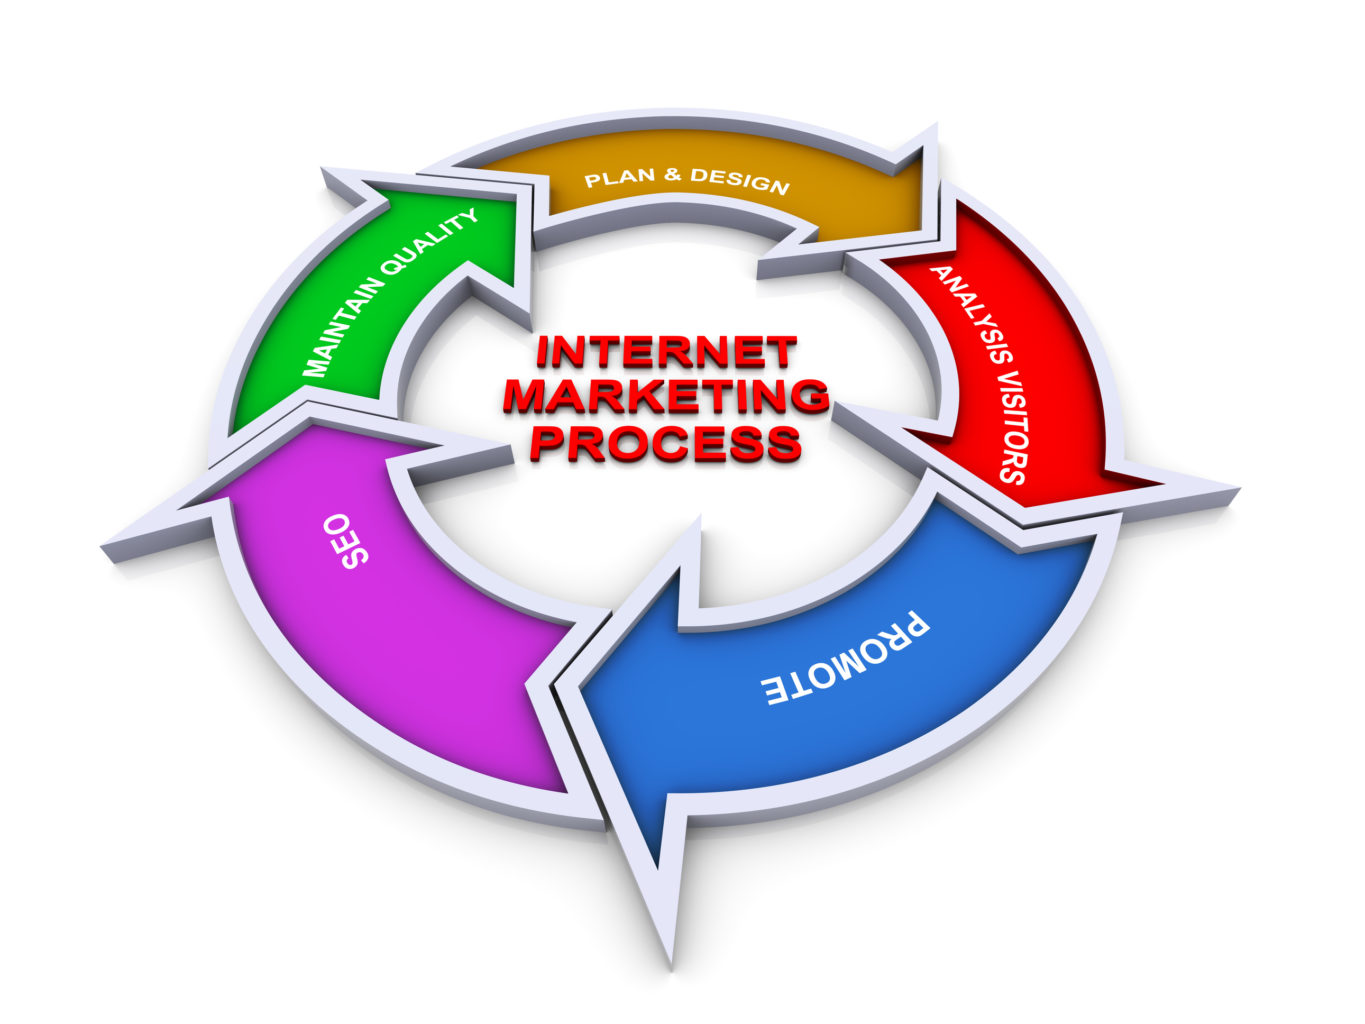 What is the best way to learn internet marketing? - Quora